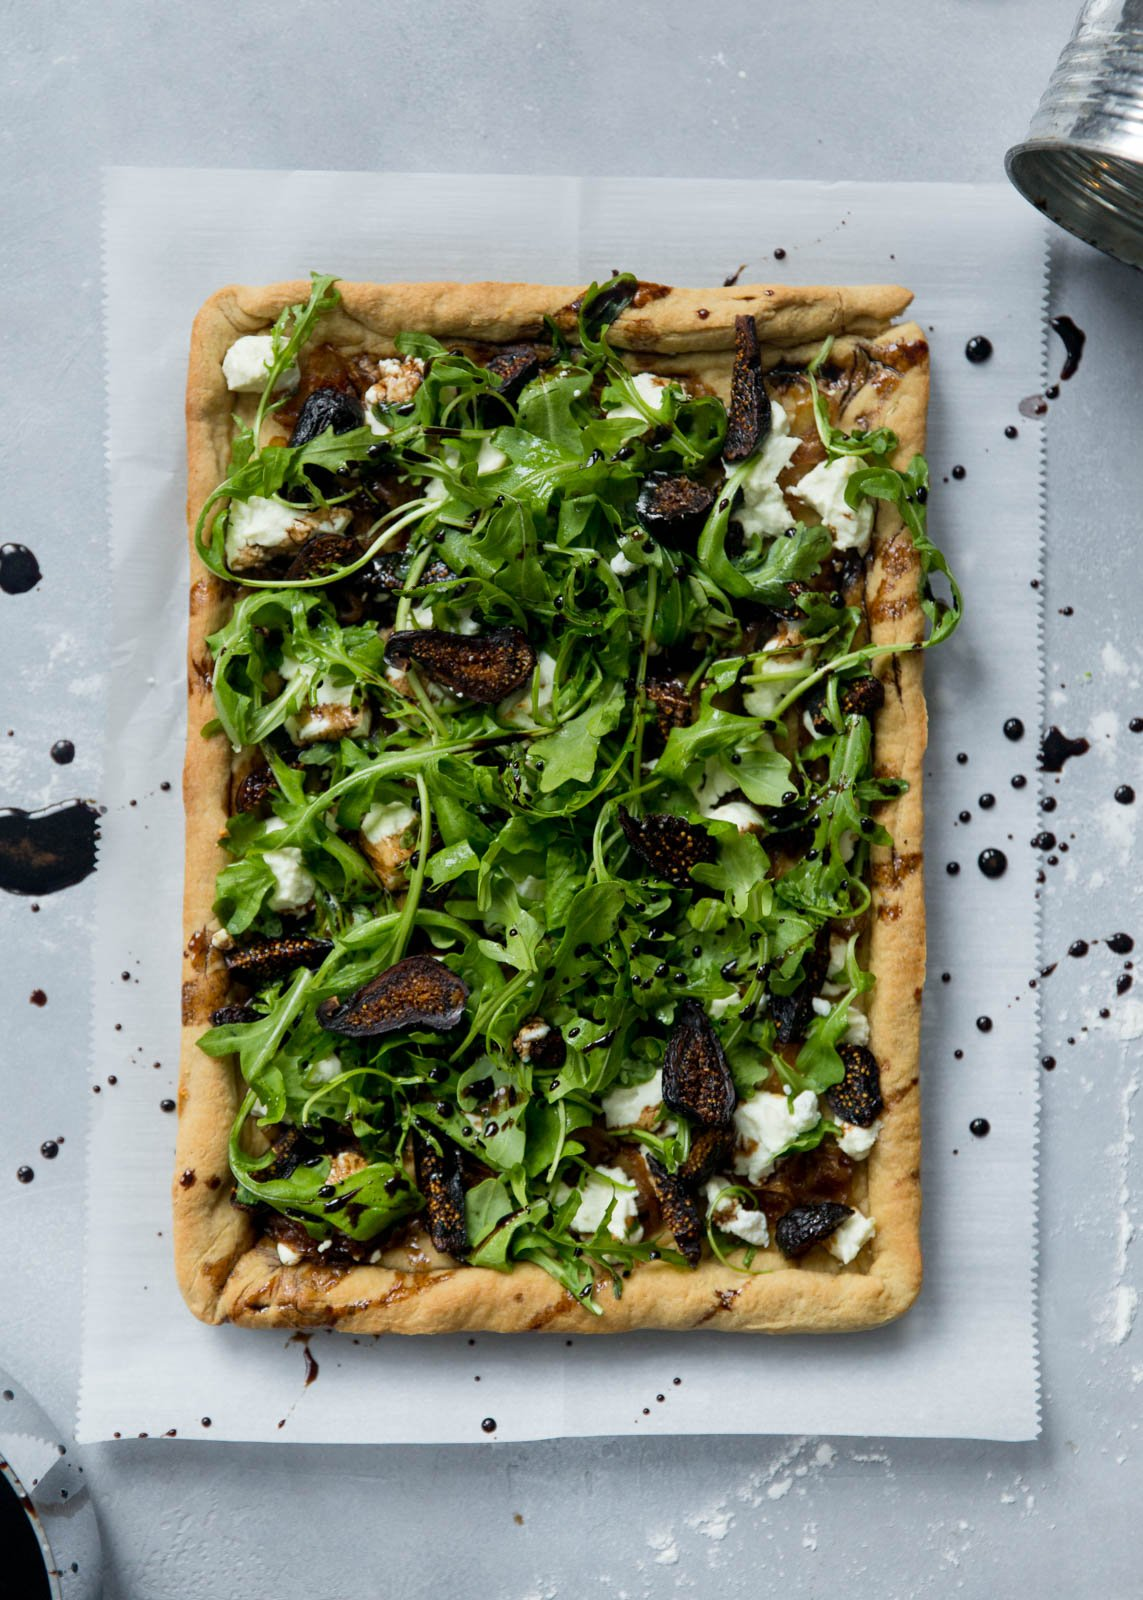 goat cheese pizza topped with with caramelized onion, goat cheese and figs